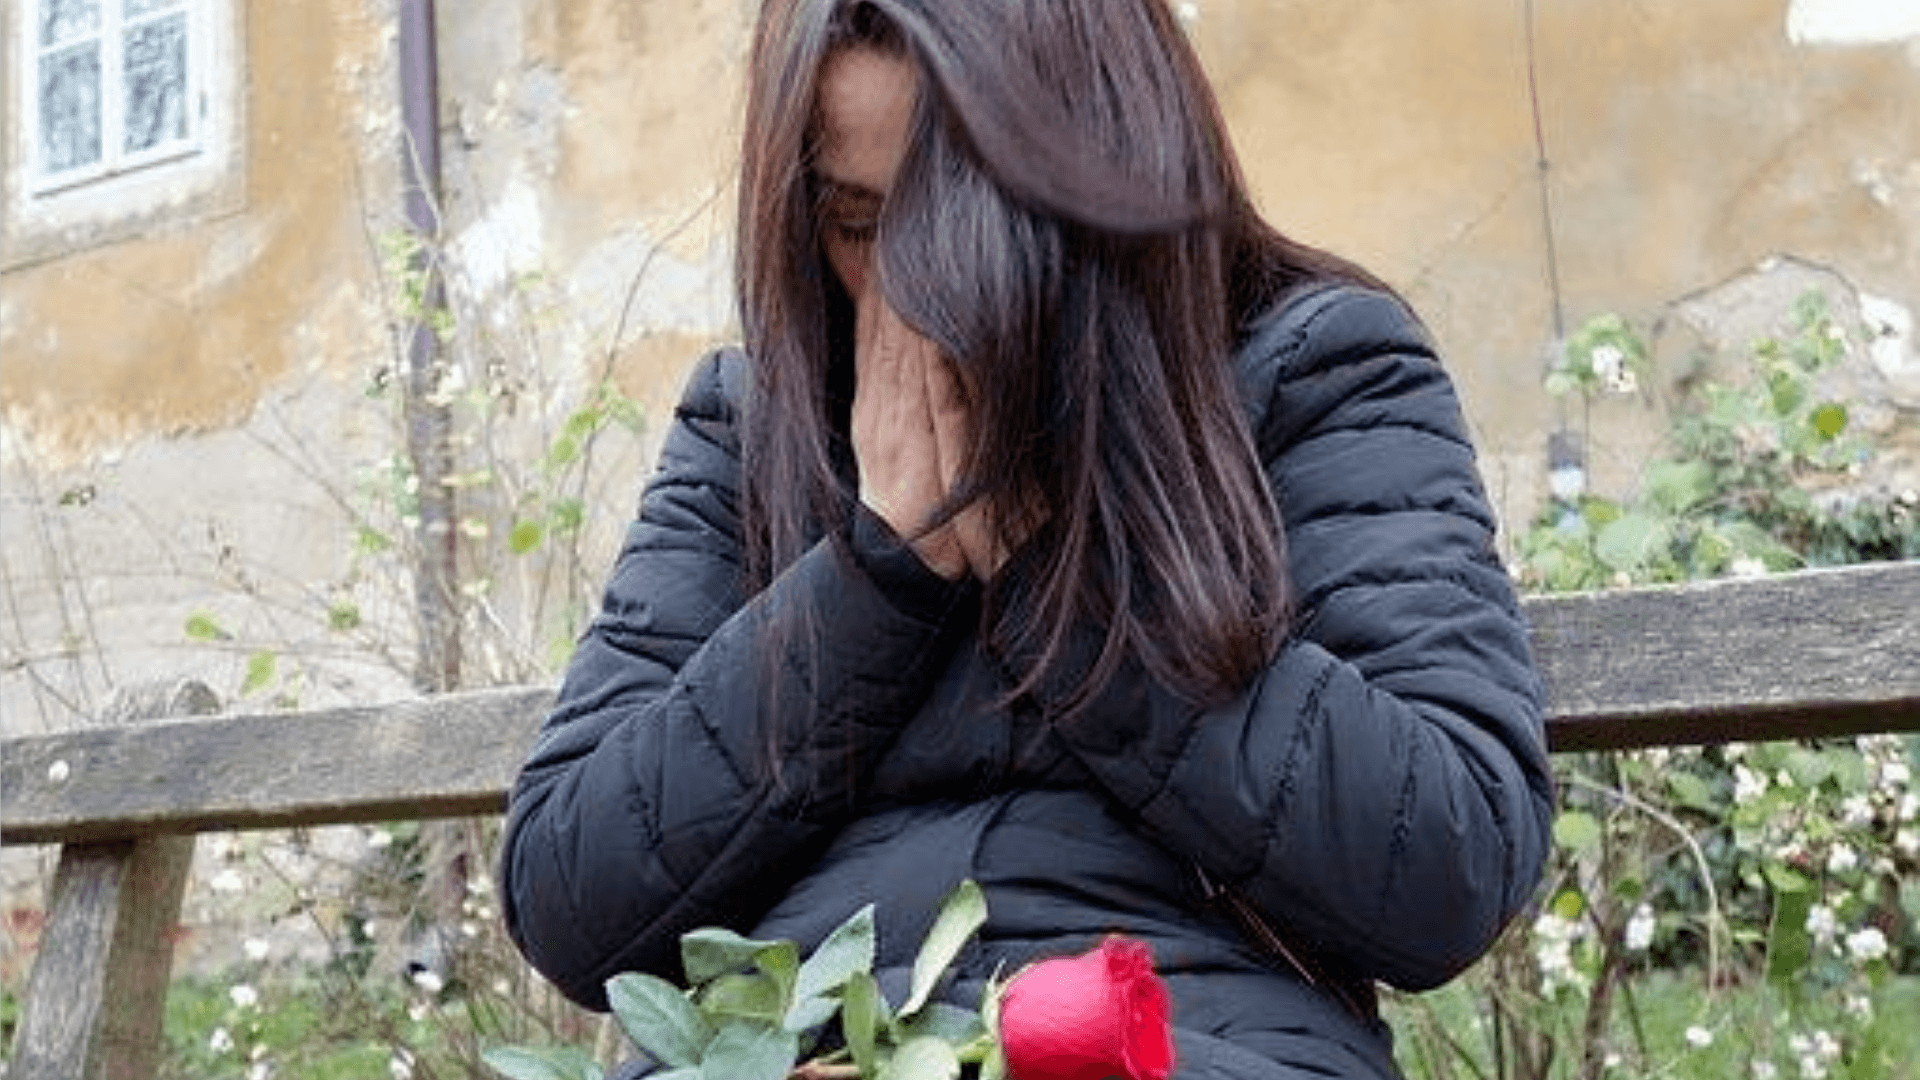 Mental health when suffering Grief loss and bereavement